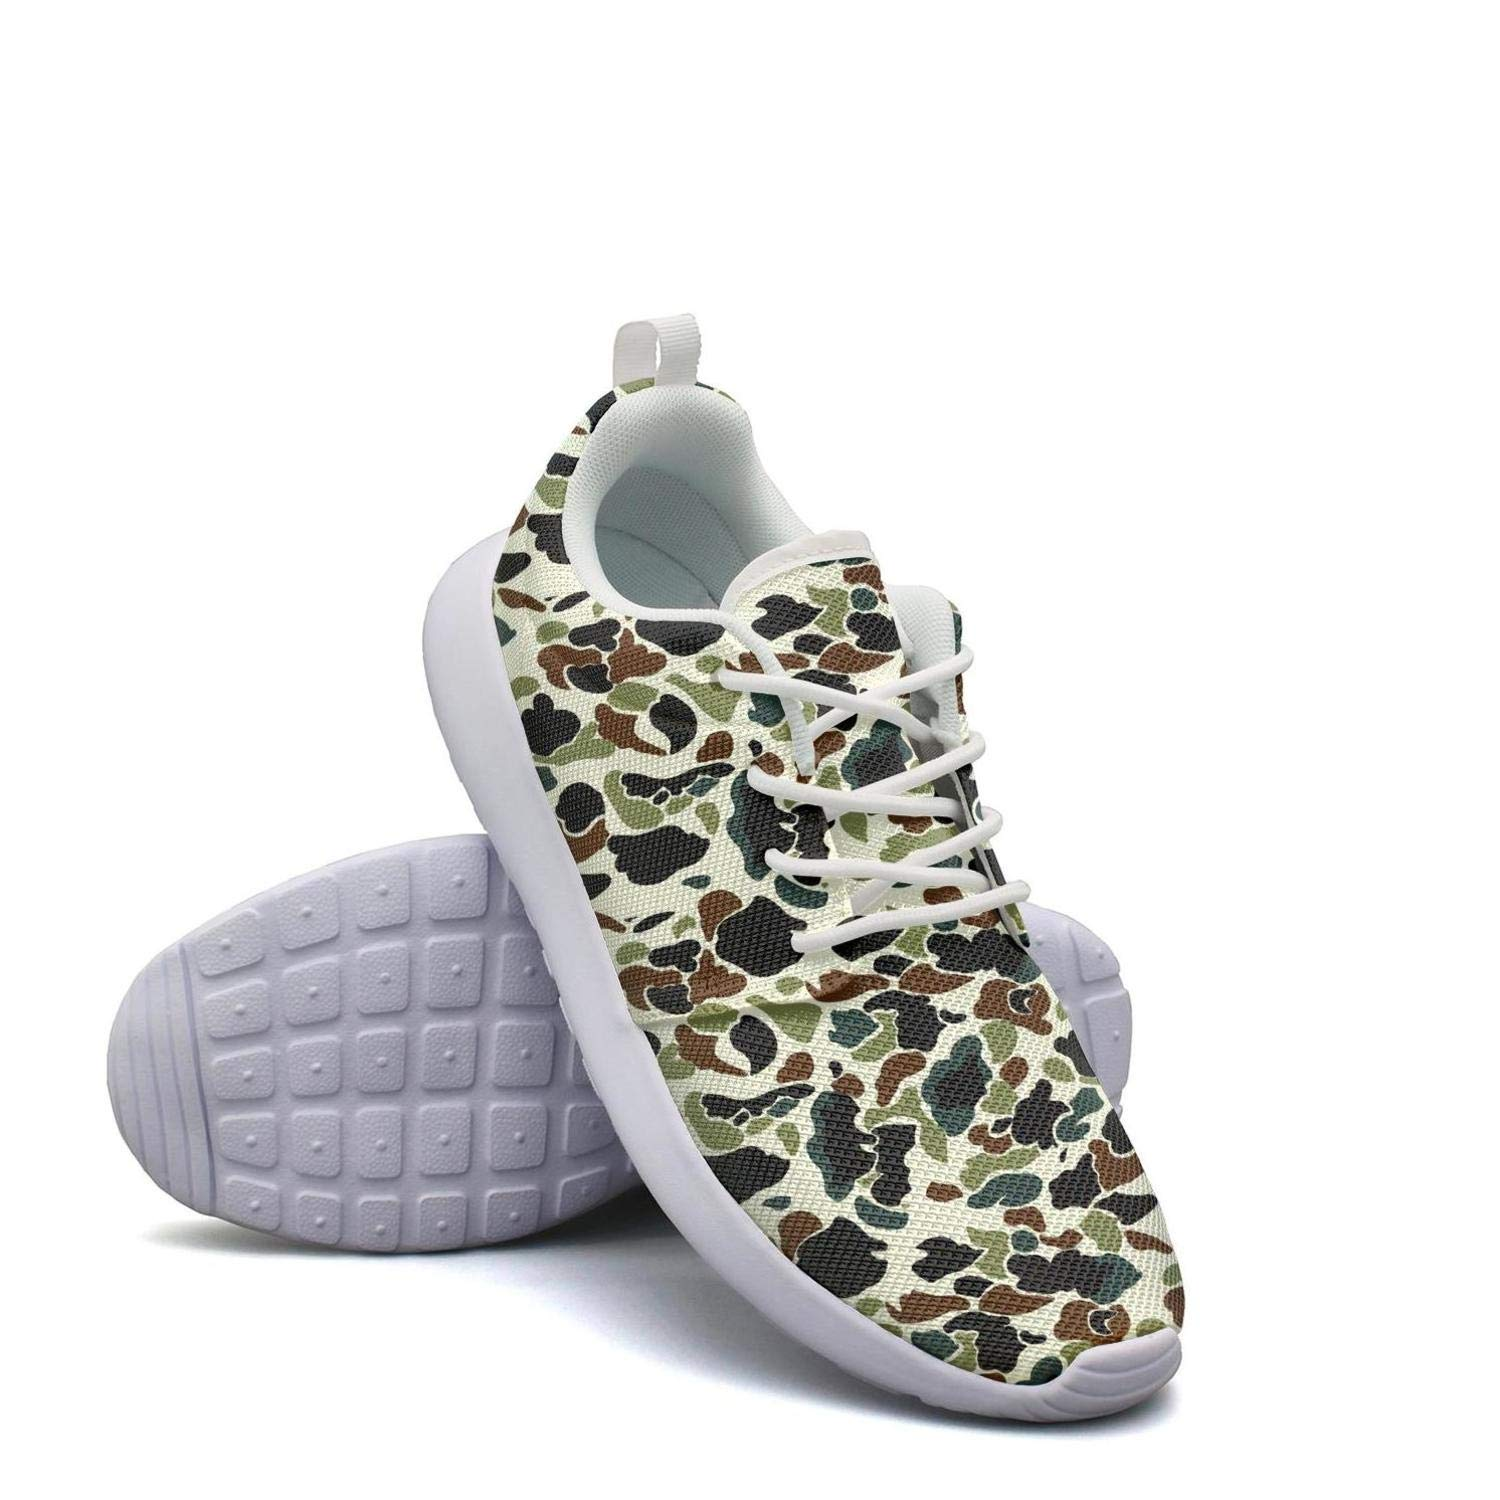 ERSER Camouflage Army Running Shoes for Plantar Fasciitis for Women